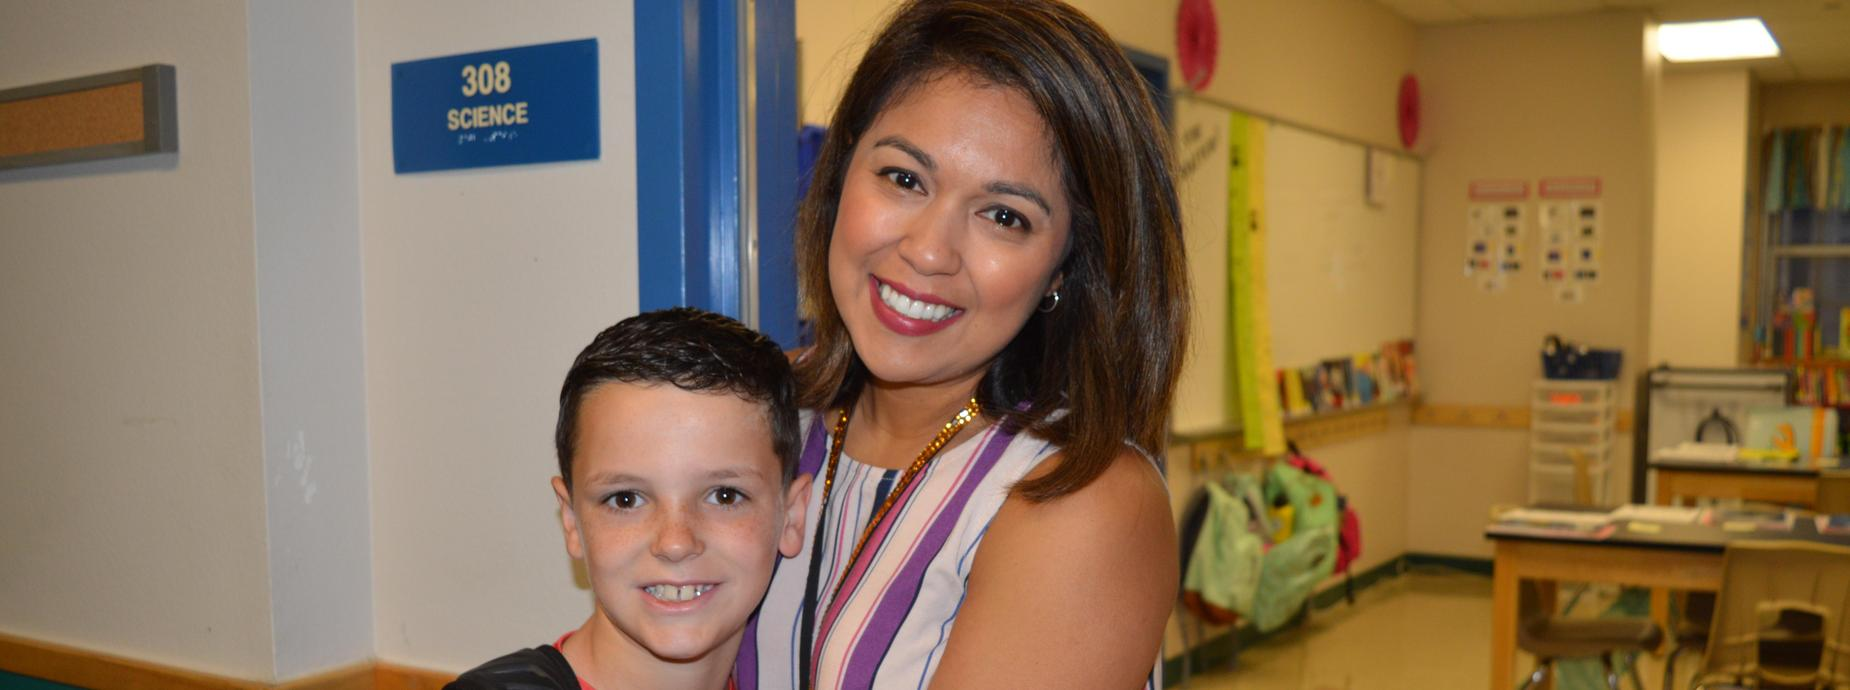 SRA. DELEON WITH STUDENT 1ST DAY OF SCHOOL